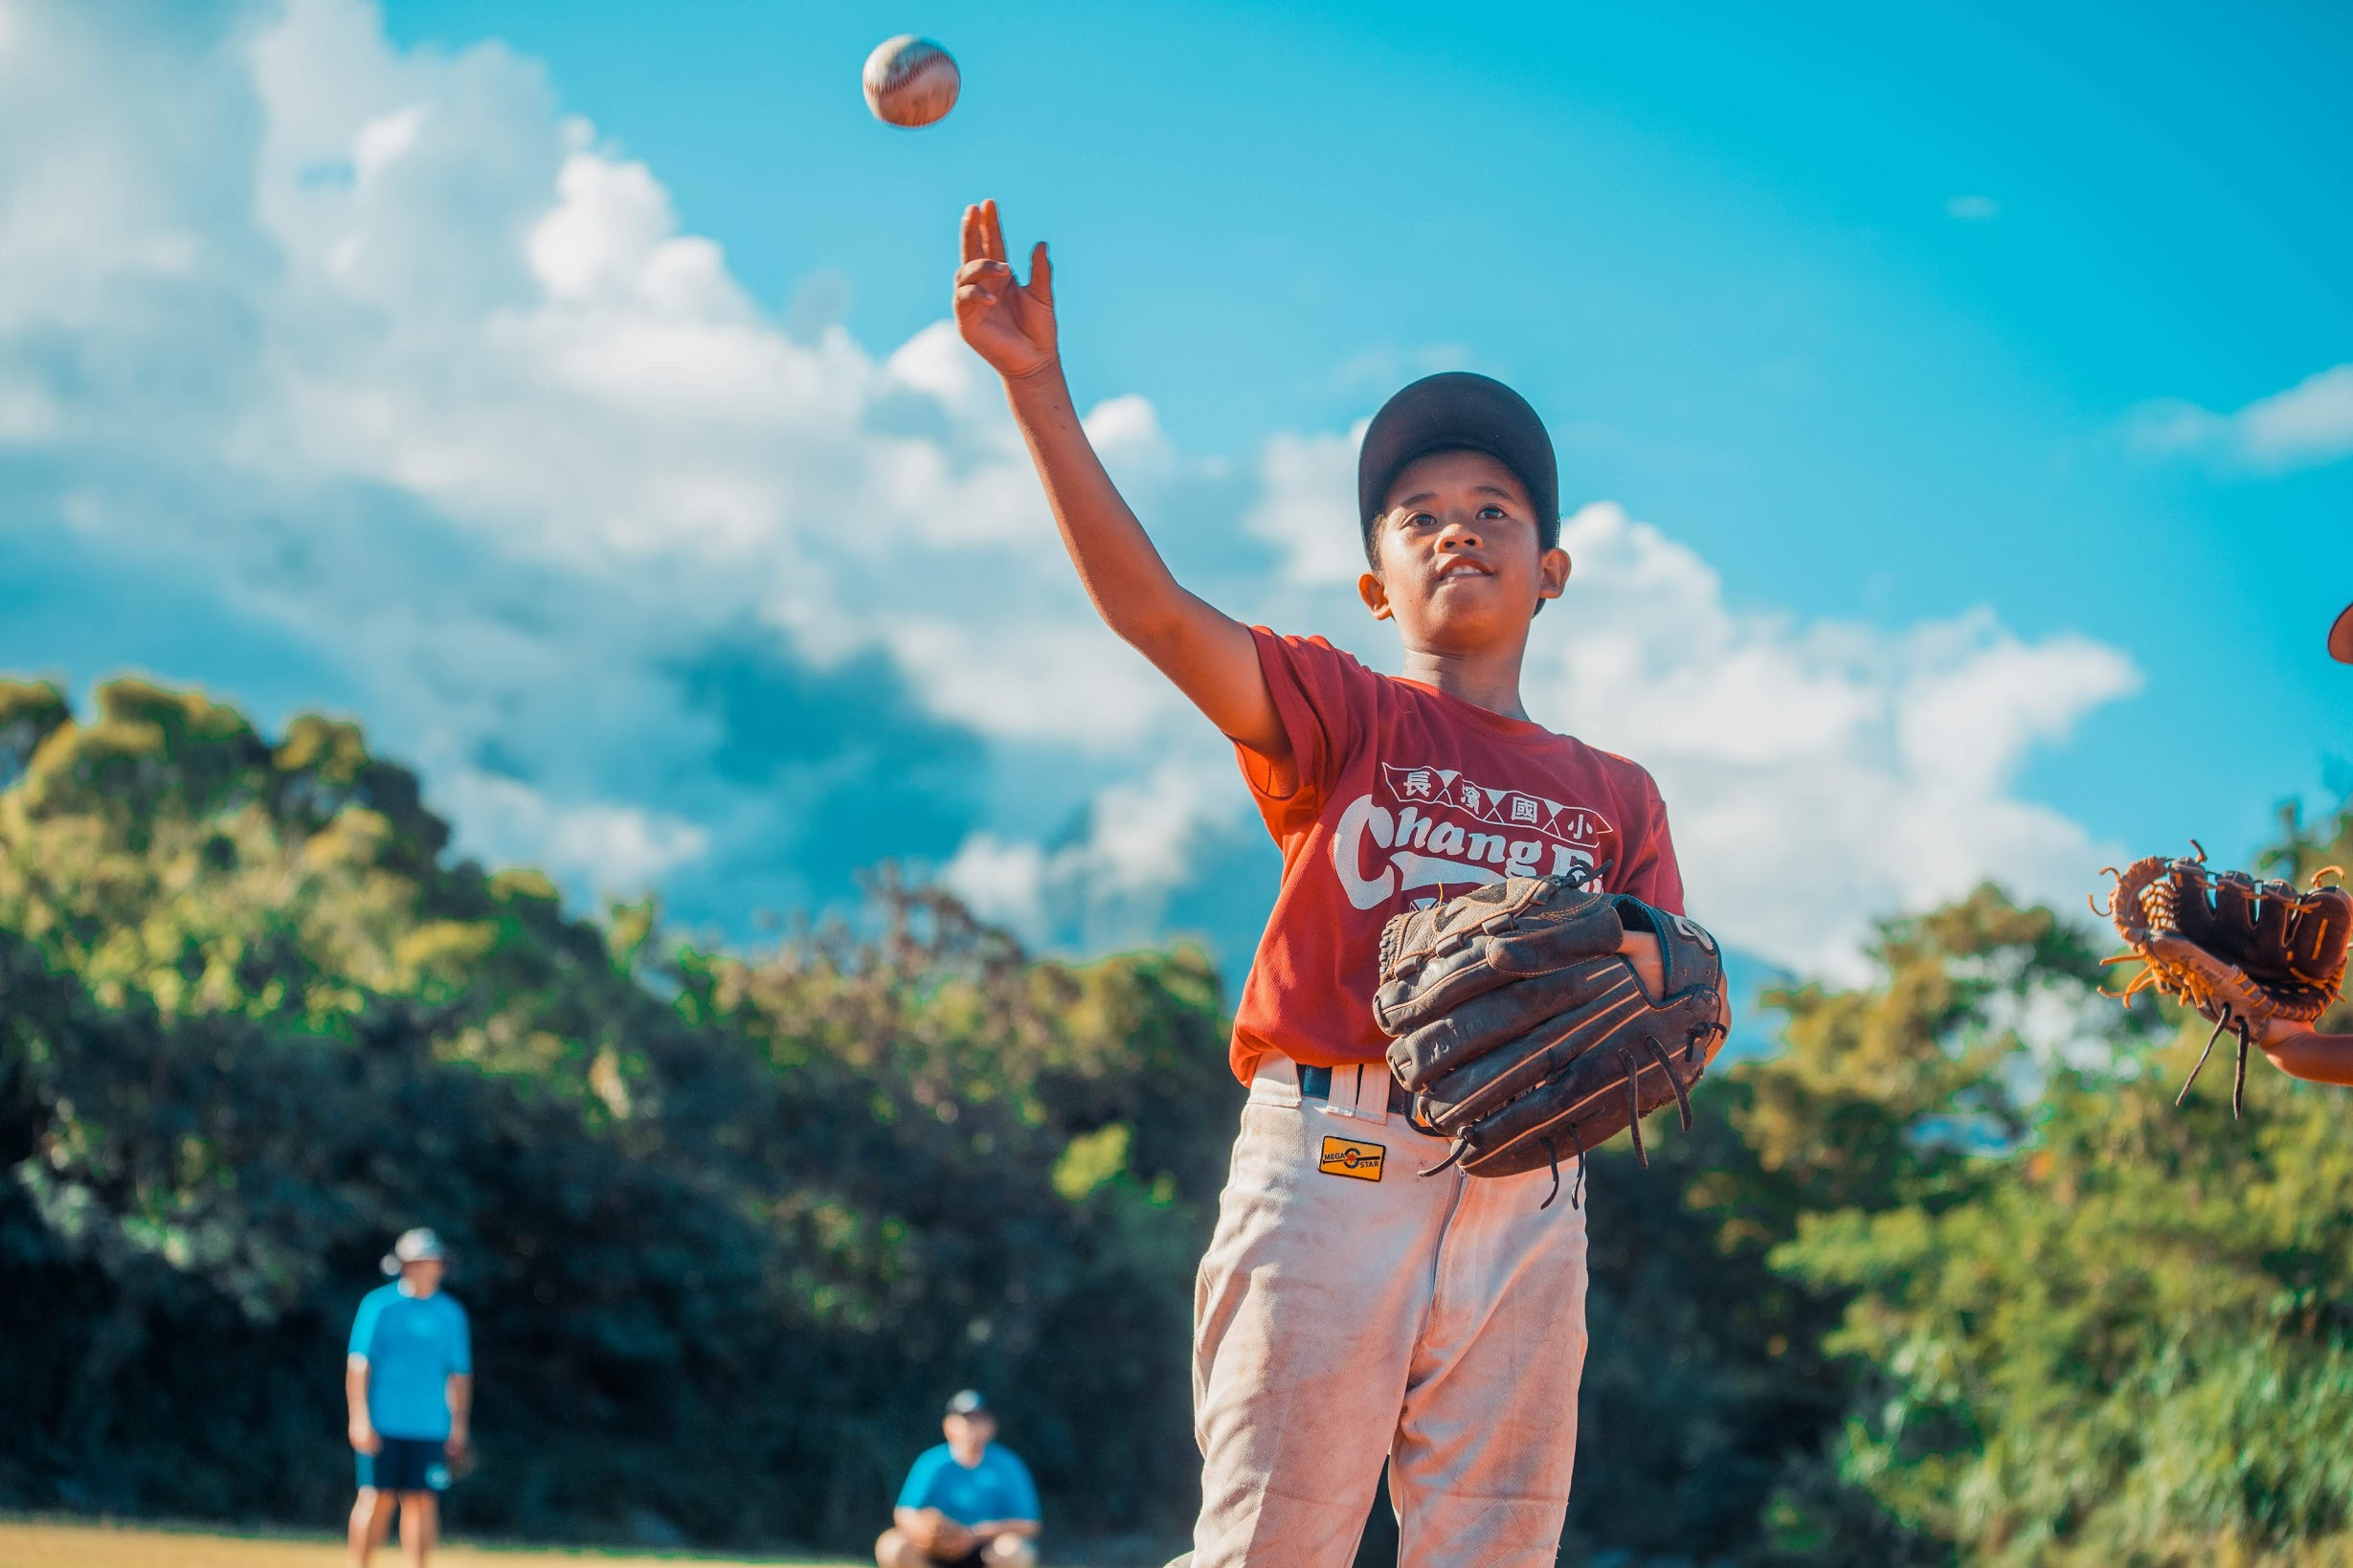 Sports have the power to change the world. It has the power to inspire, the power to unite people in a way that little else does. It speaks to youth in a language they understand. Sports can create hope, where there was once only despair. - - Nelson Mandela